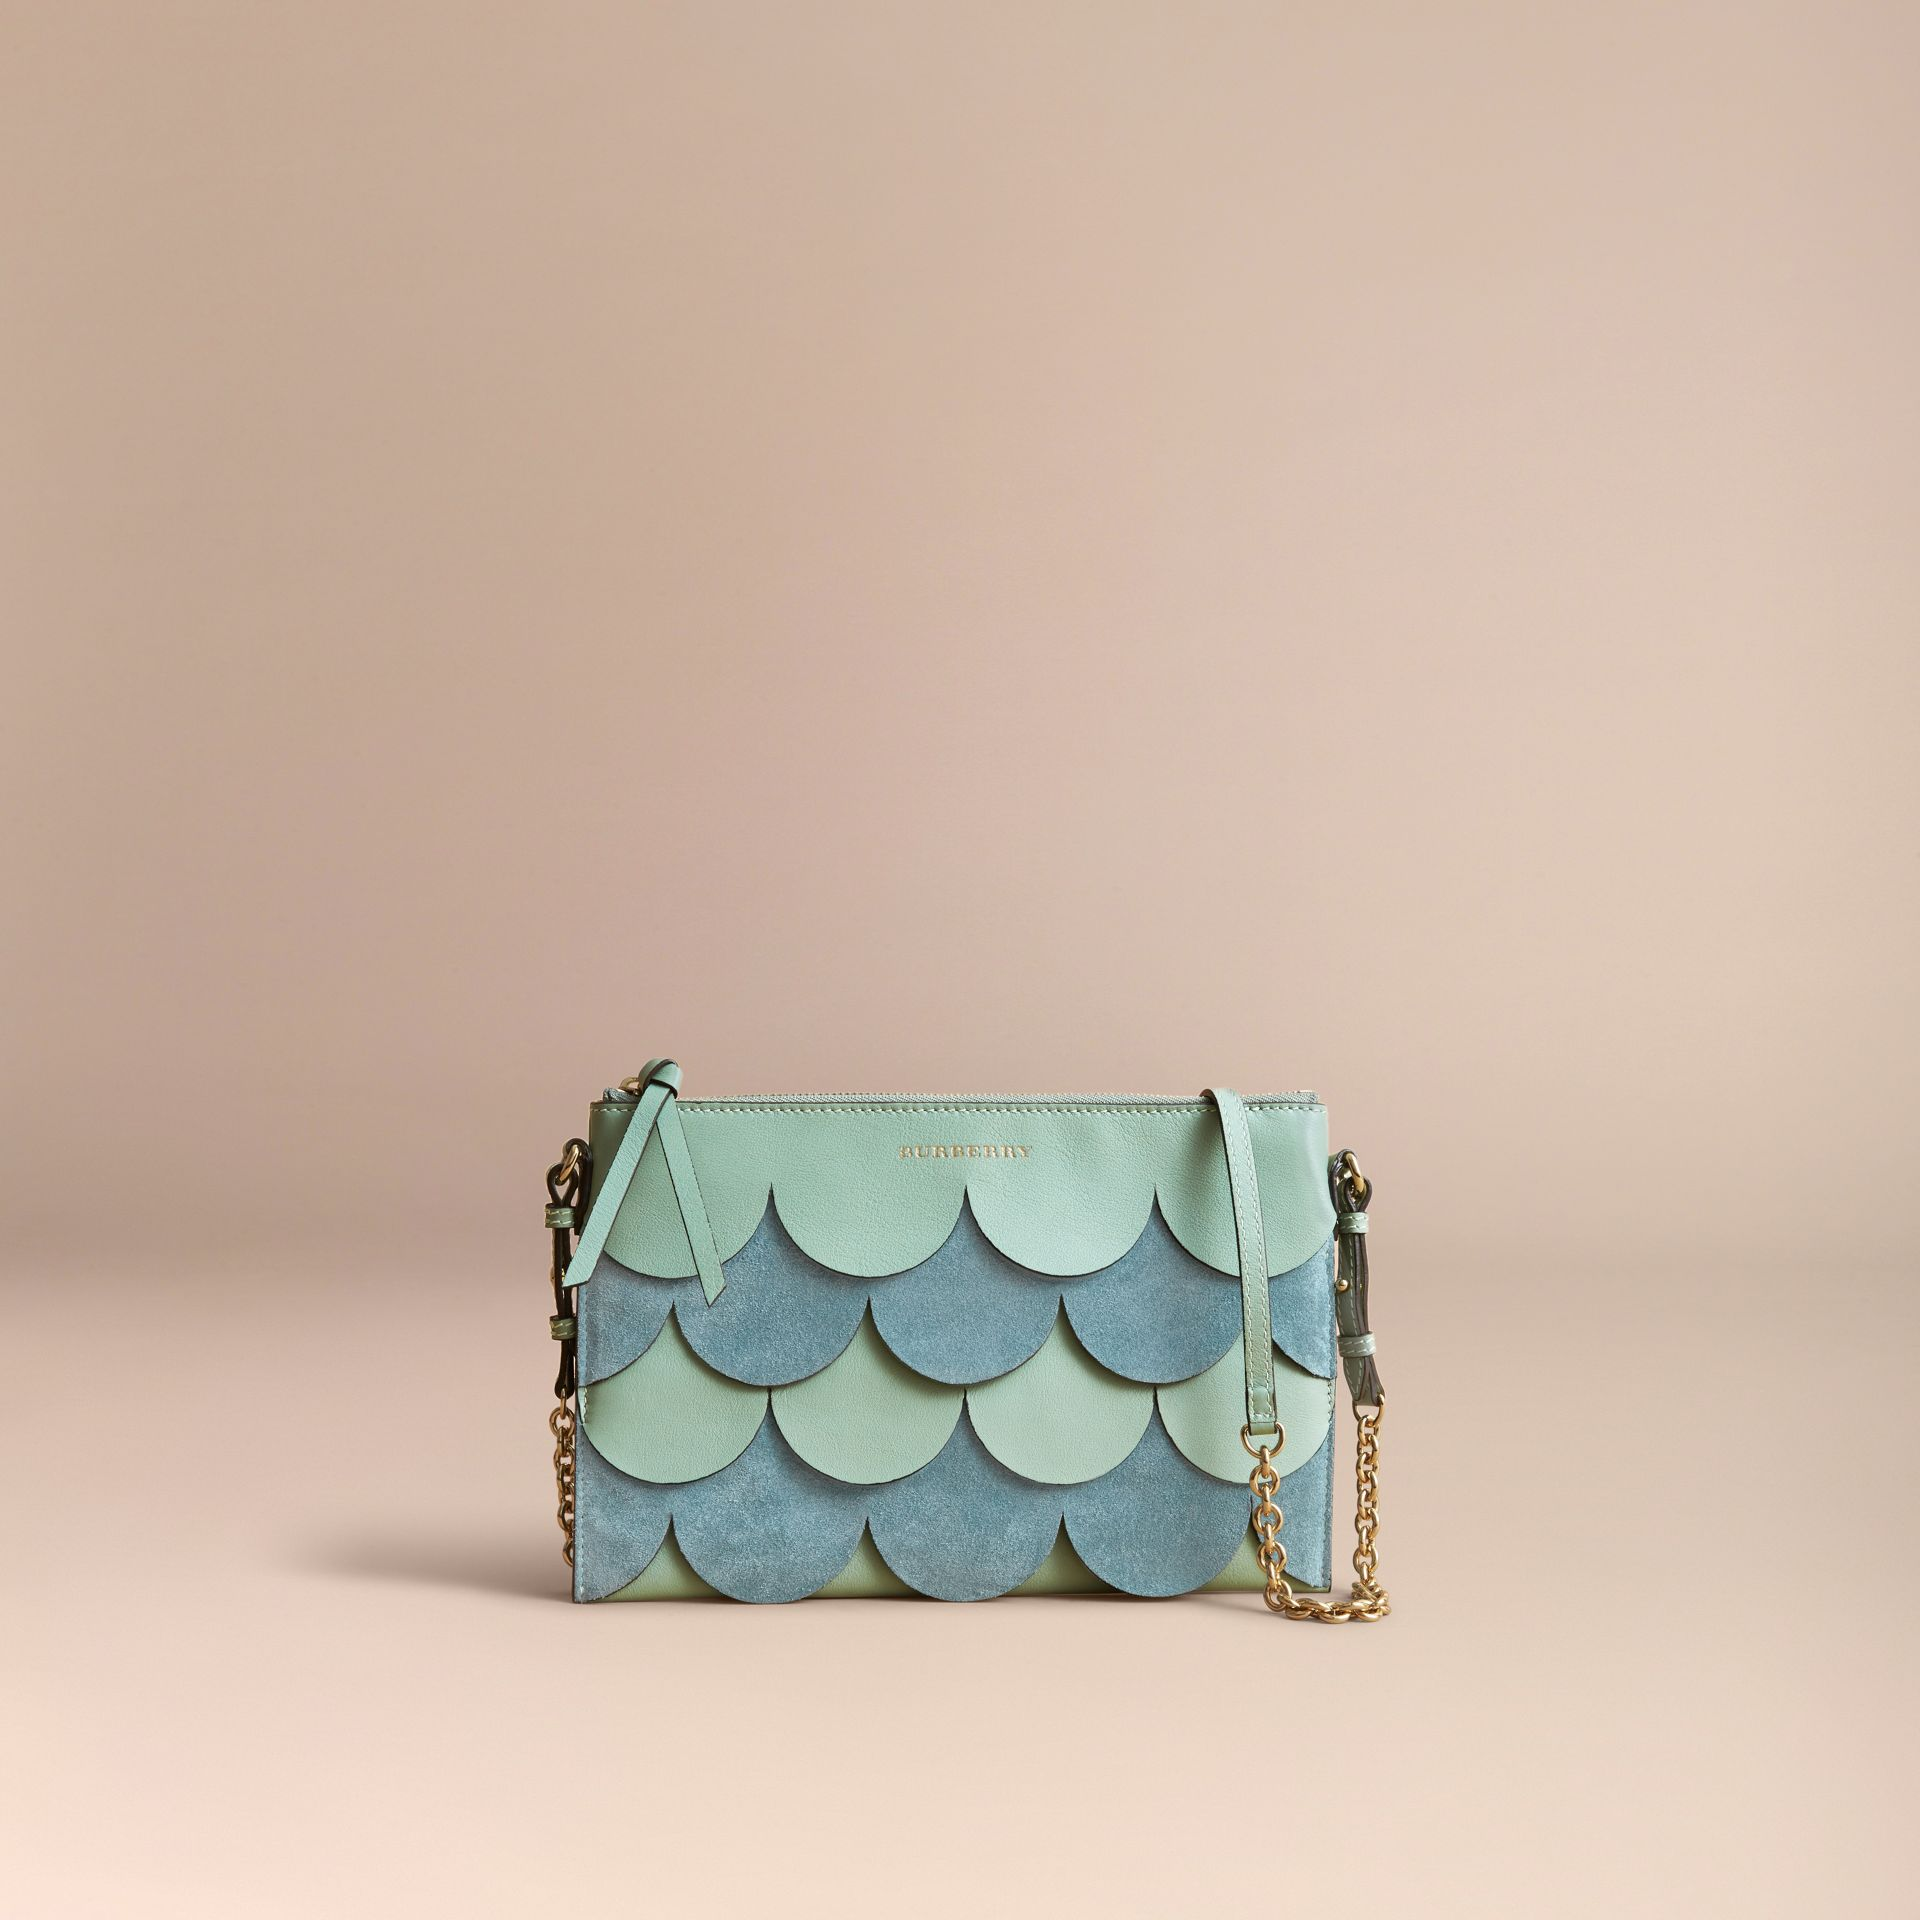 Two-tone Scalloped Leather and Suede Clutch Bag in Celadon Green - Women | Burberry Singapore - gallery image 8